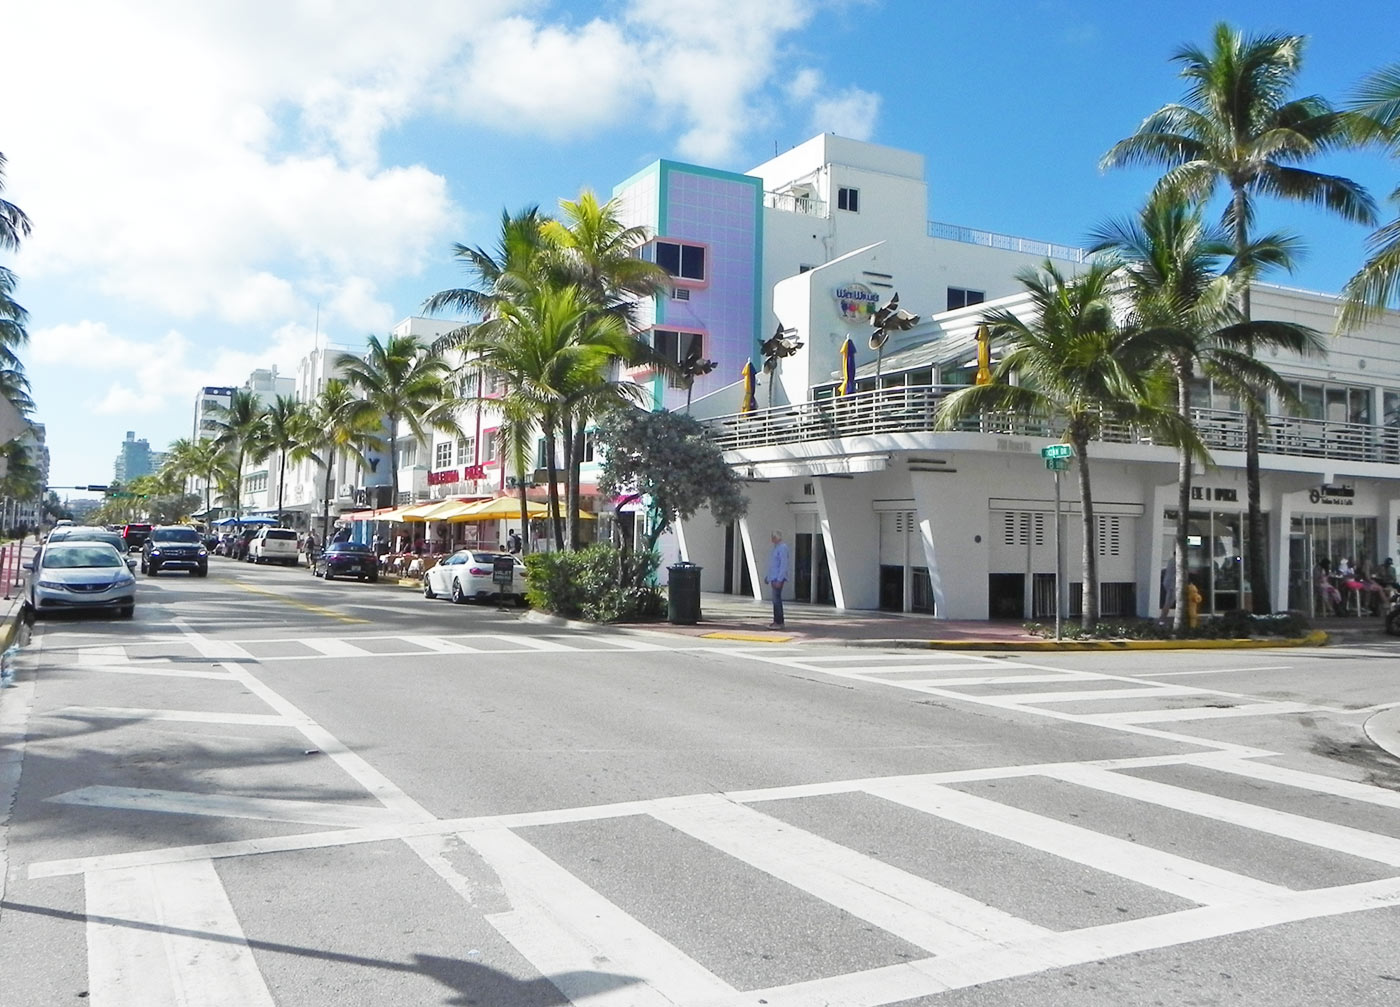 street view of miami's south beach shows bright palm trees and stores along the sidewalk